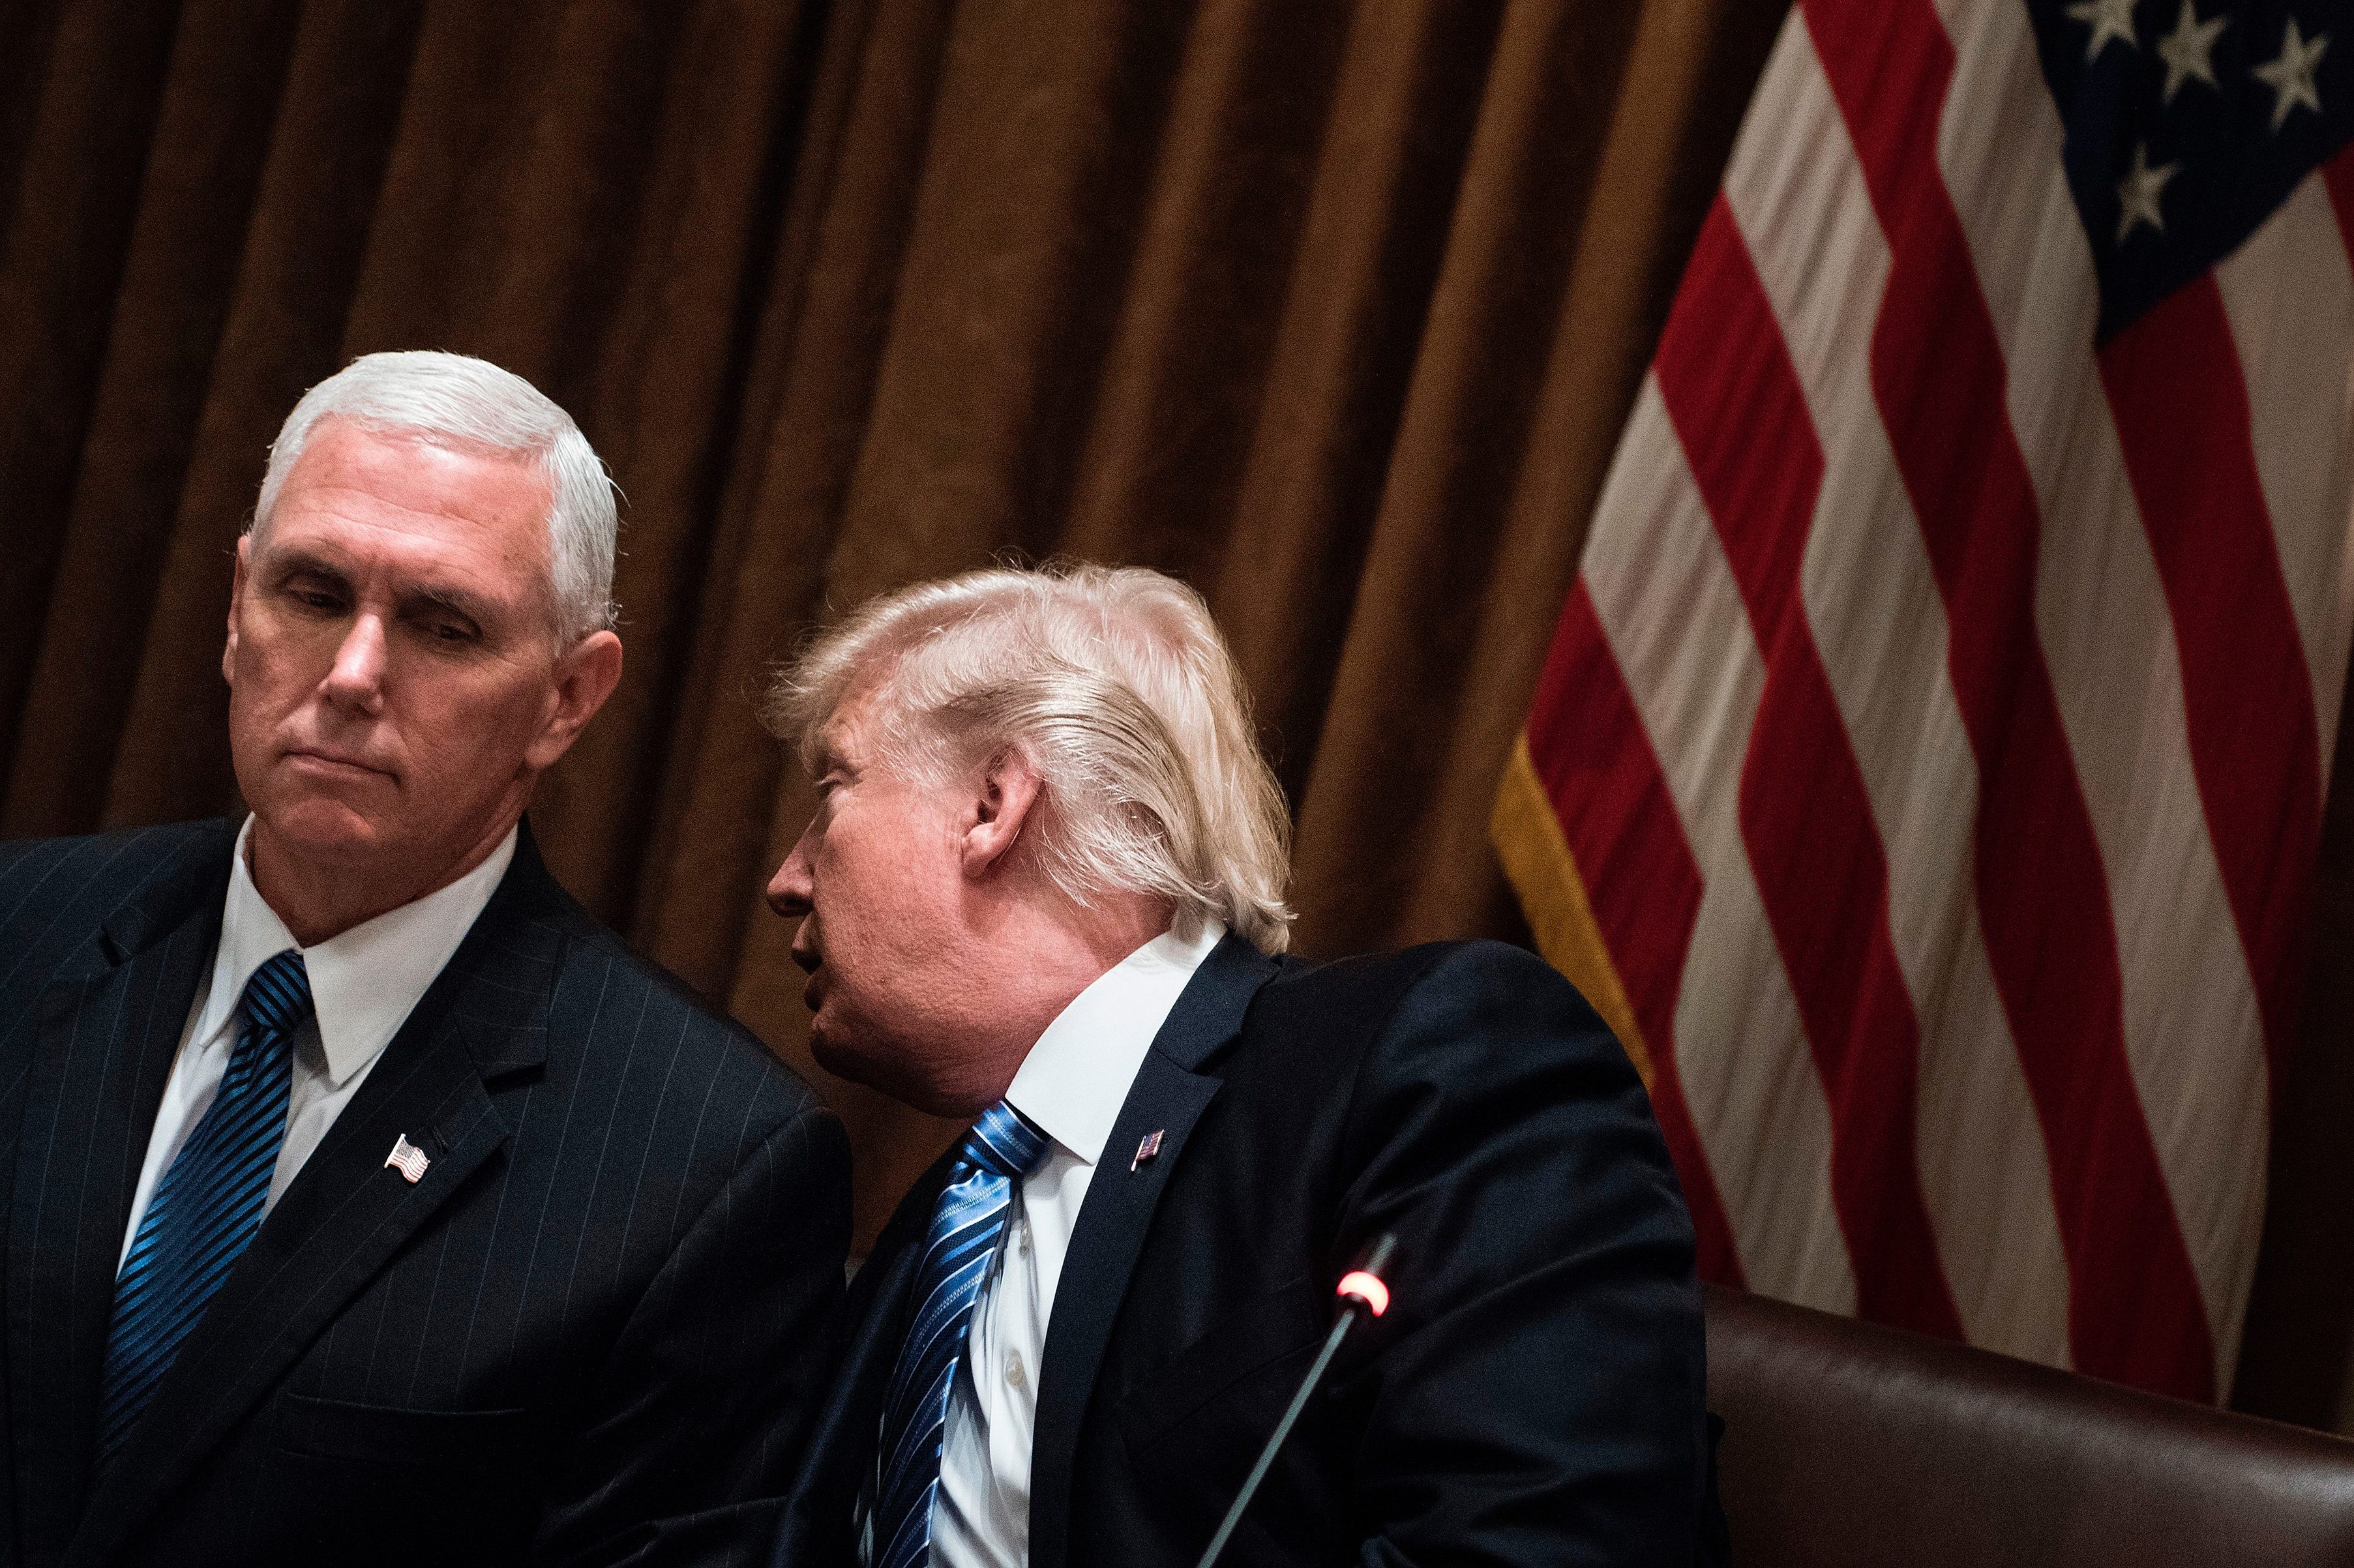 US President Donald Trump whispers to US Vice President Mike Pence before a meeting with South Korea's President Moon Jae-in in the Cabinet Room of the White House June 30, 2017 in Washington, DC.